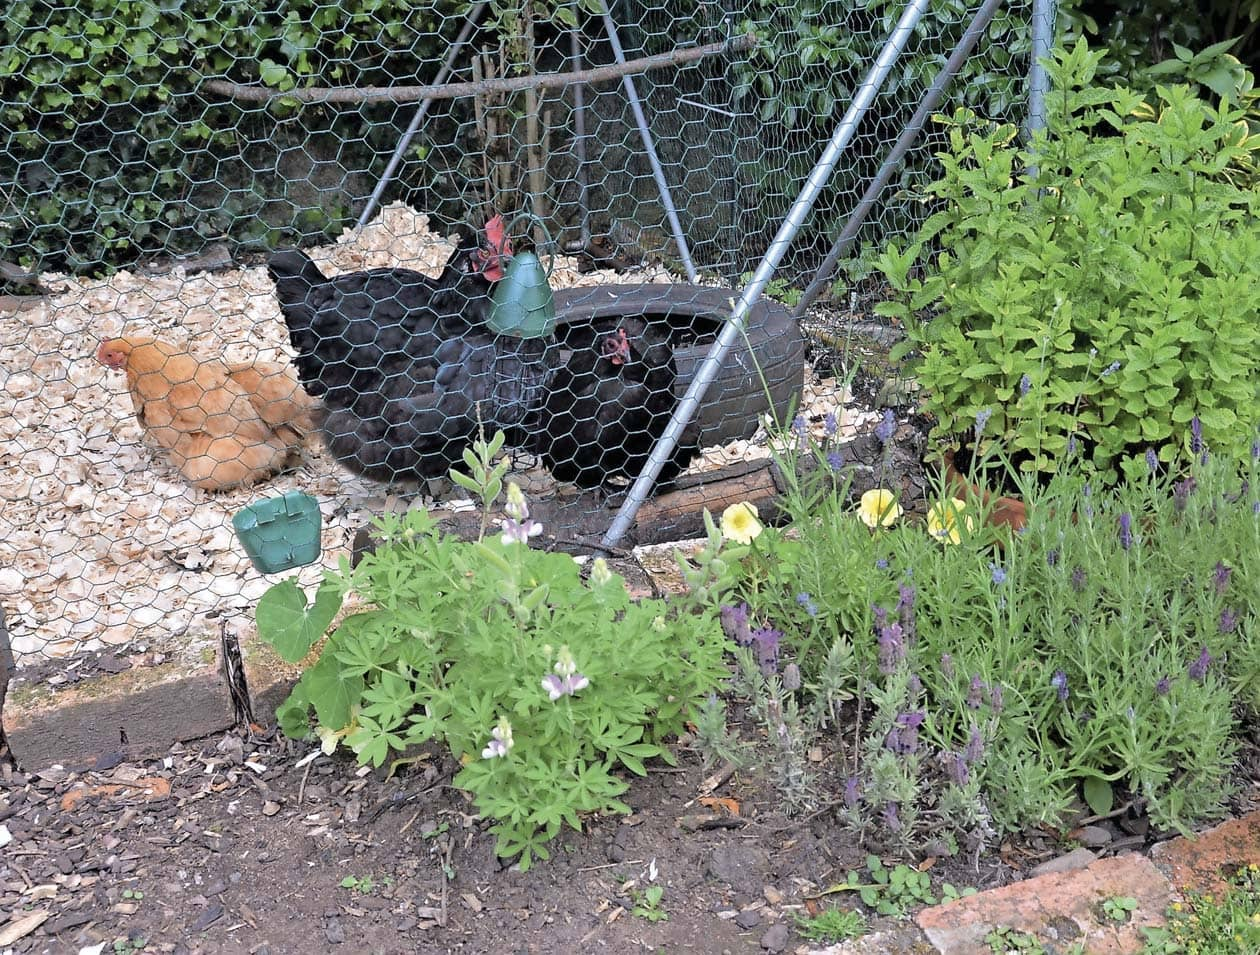 Hens and herbs